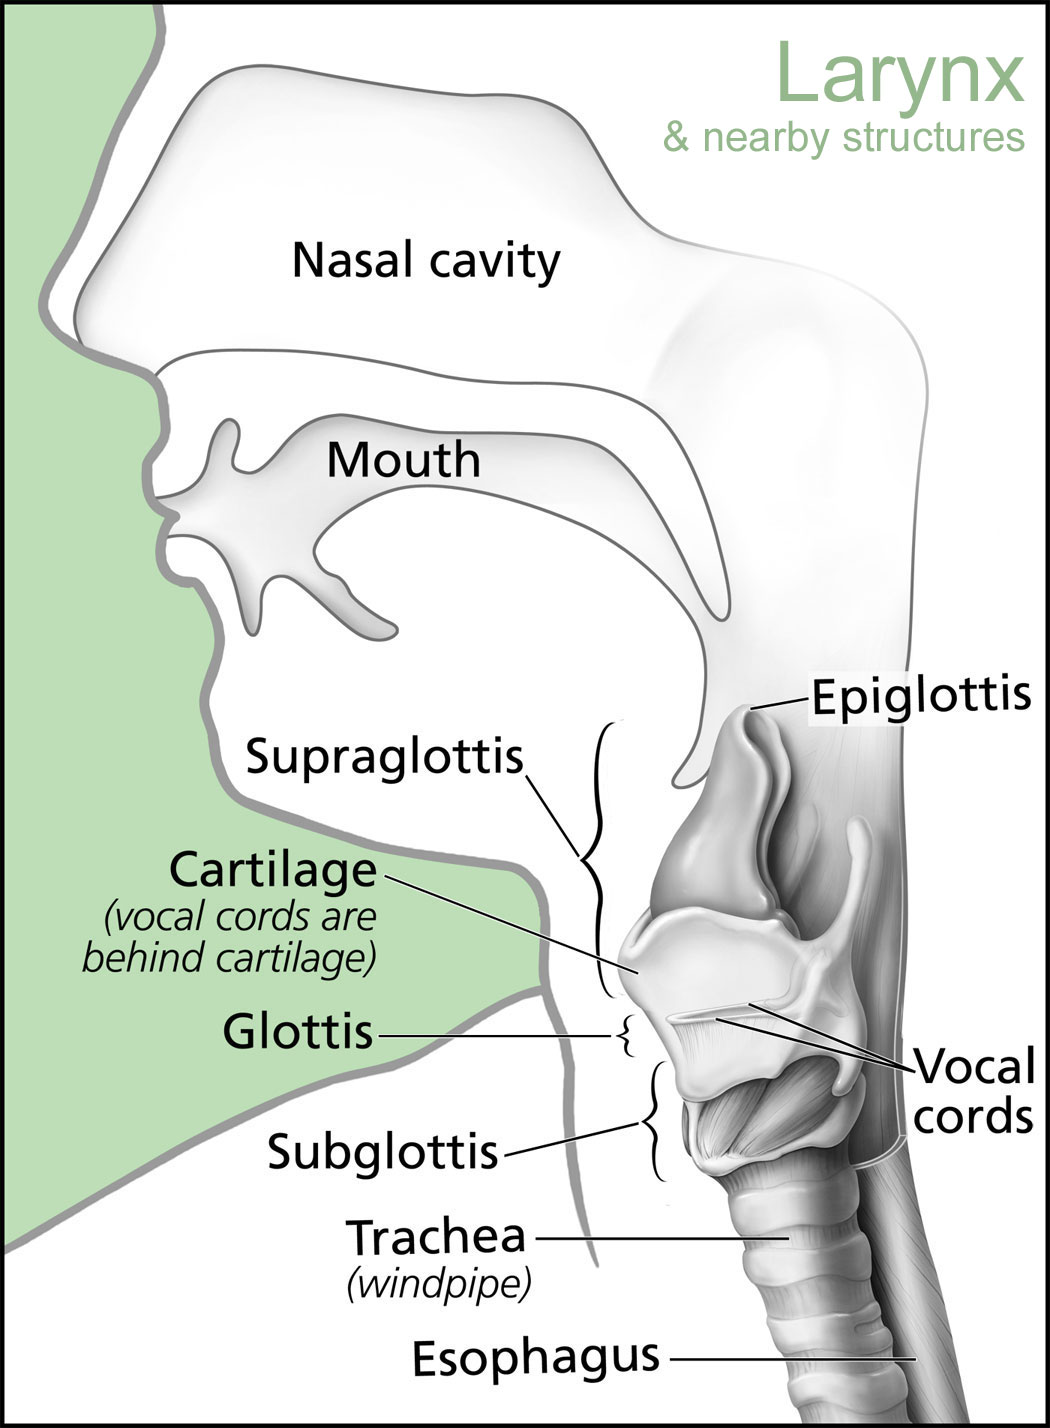 thyroid and larynx anatomy diagram multiple gfci outlet wiring speech evolution or why humans are awesome